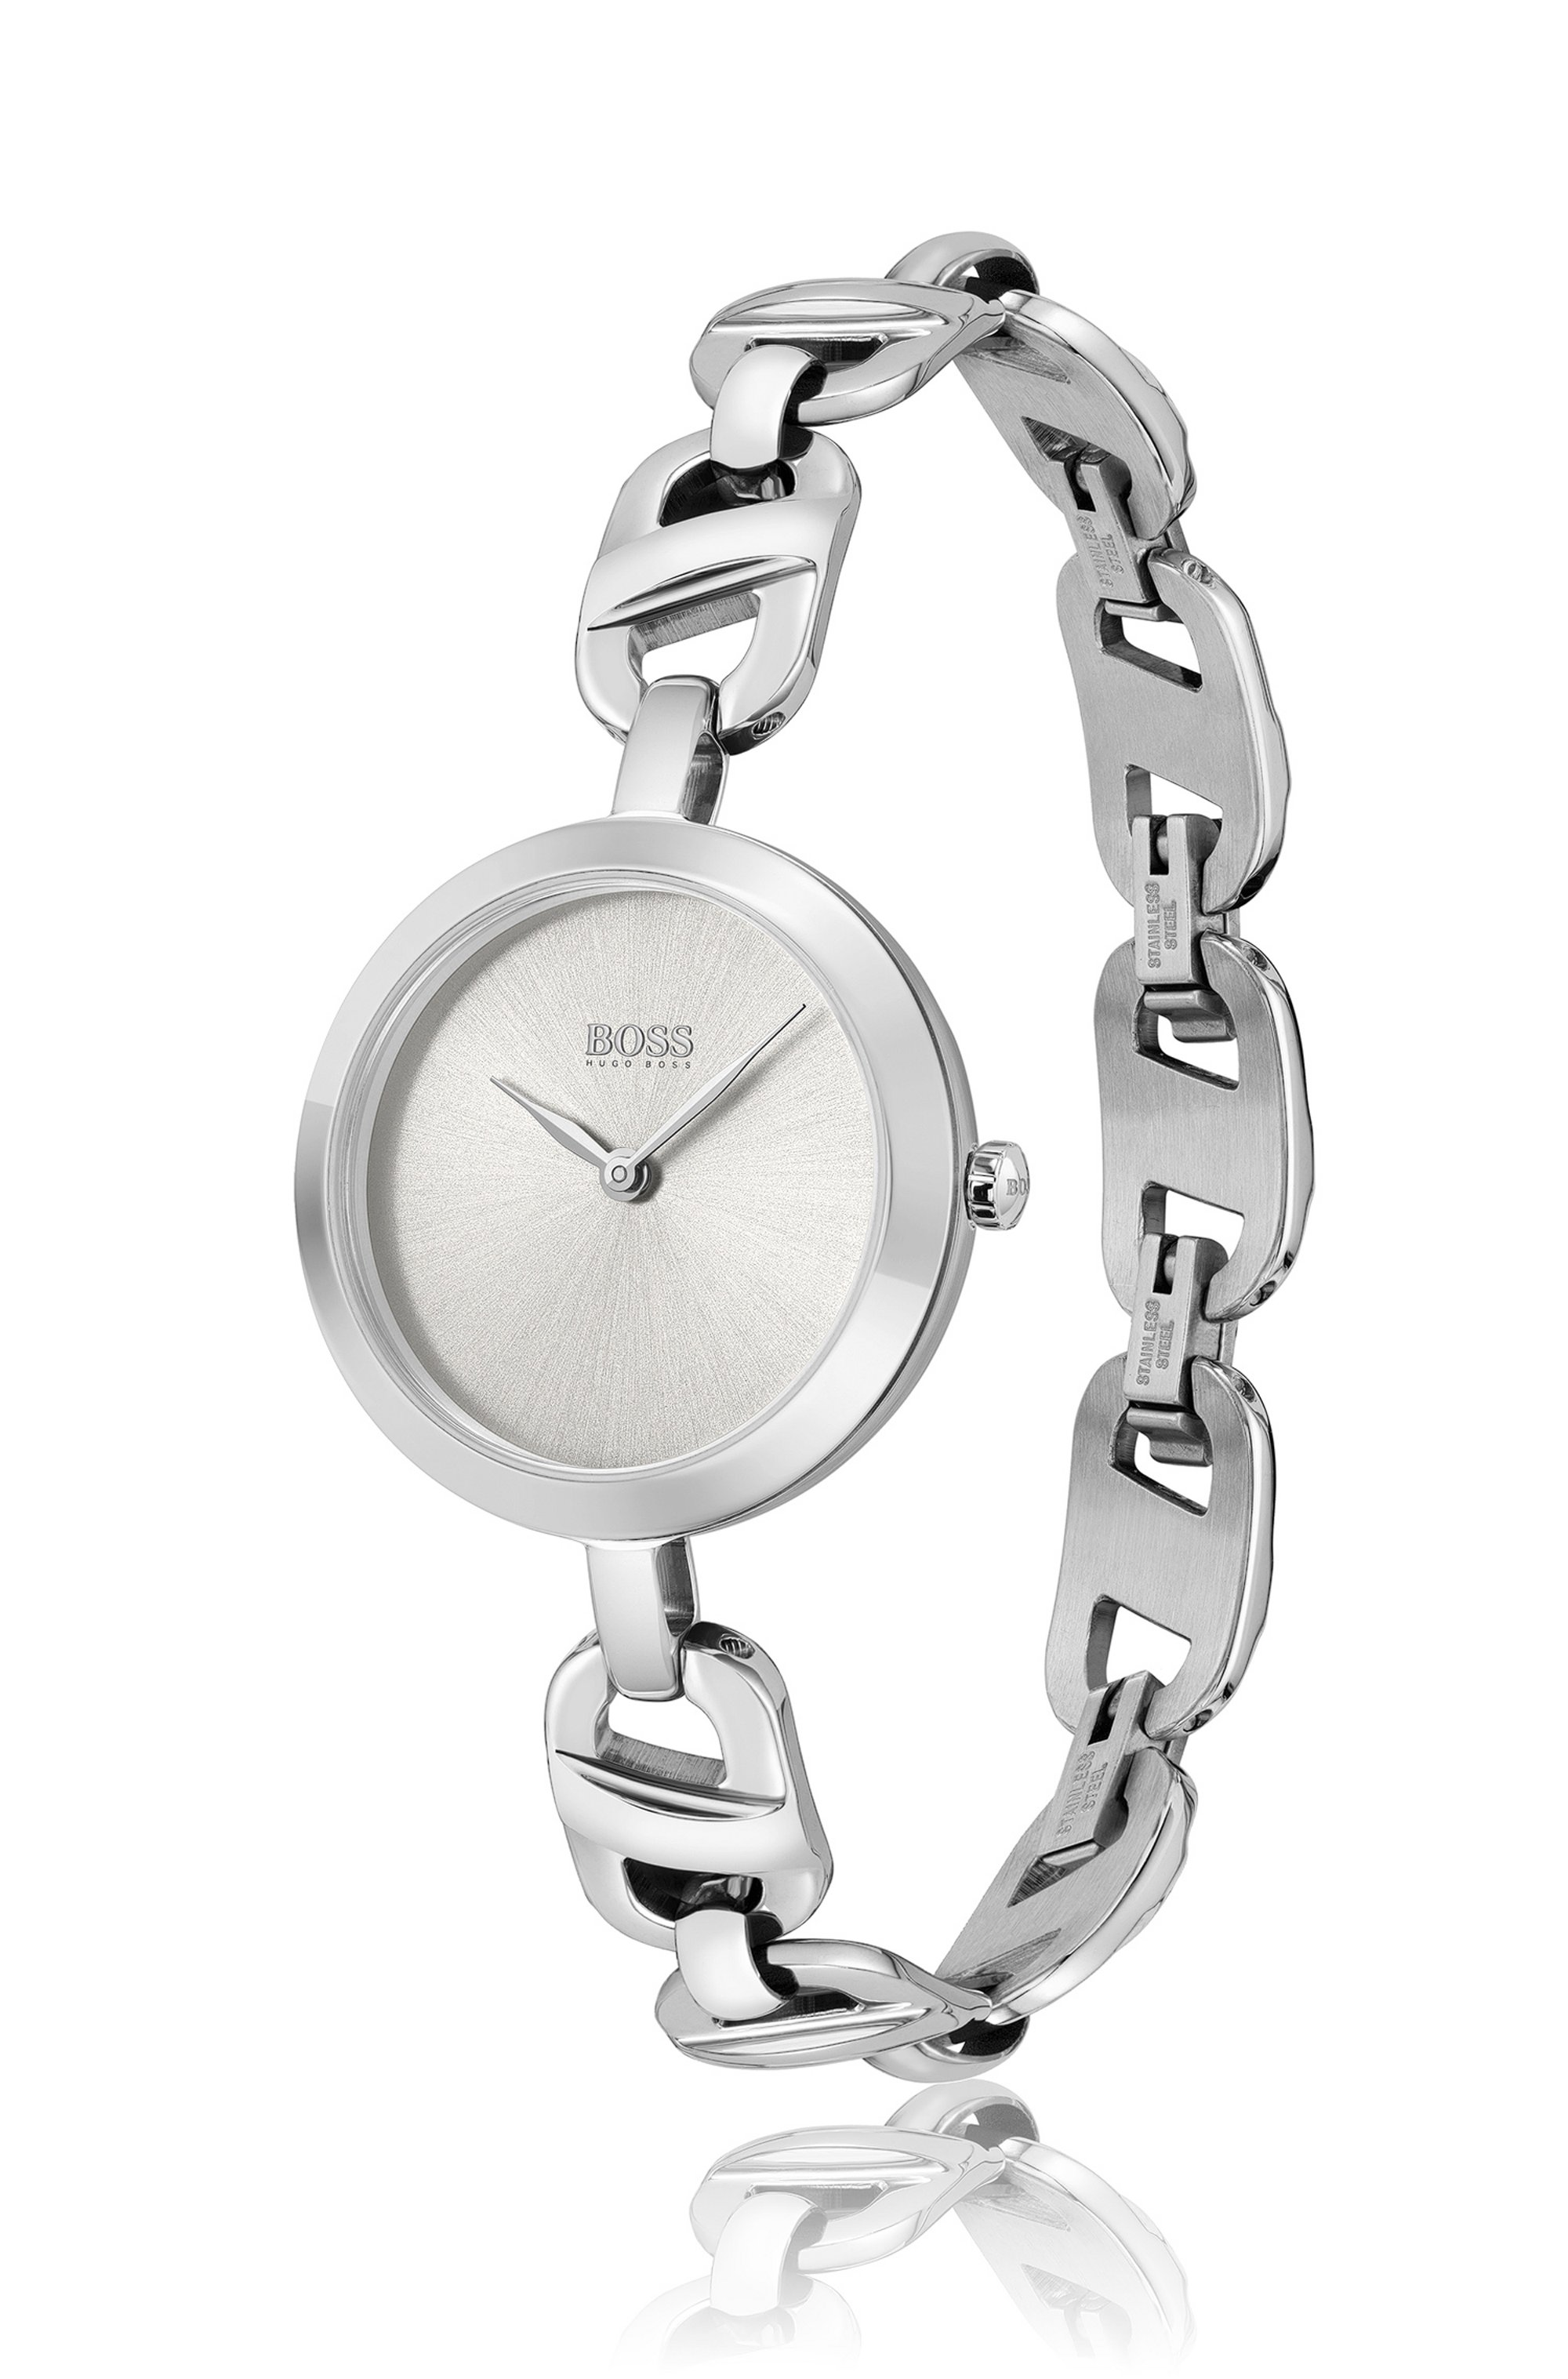 Stainless-steel watch with chain-link bracelet